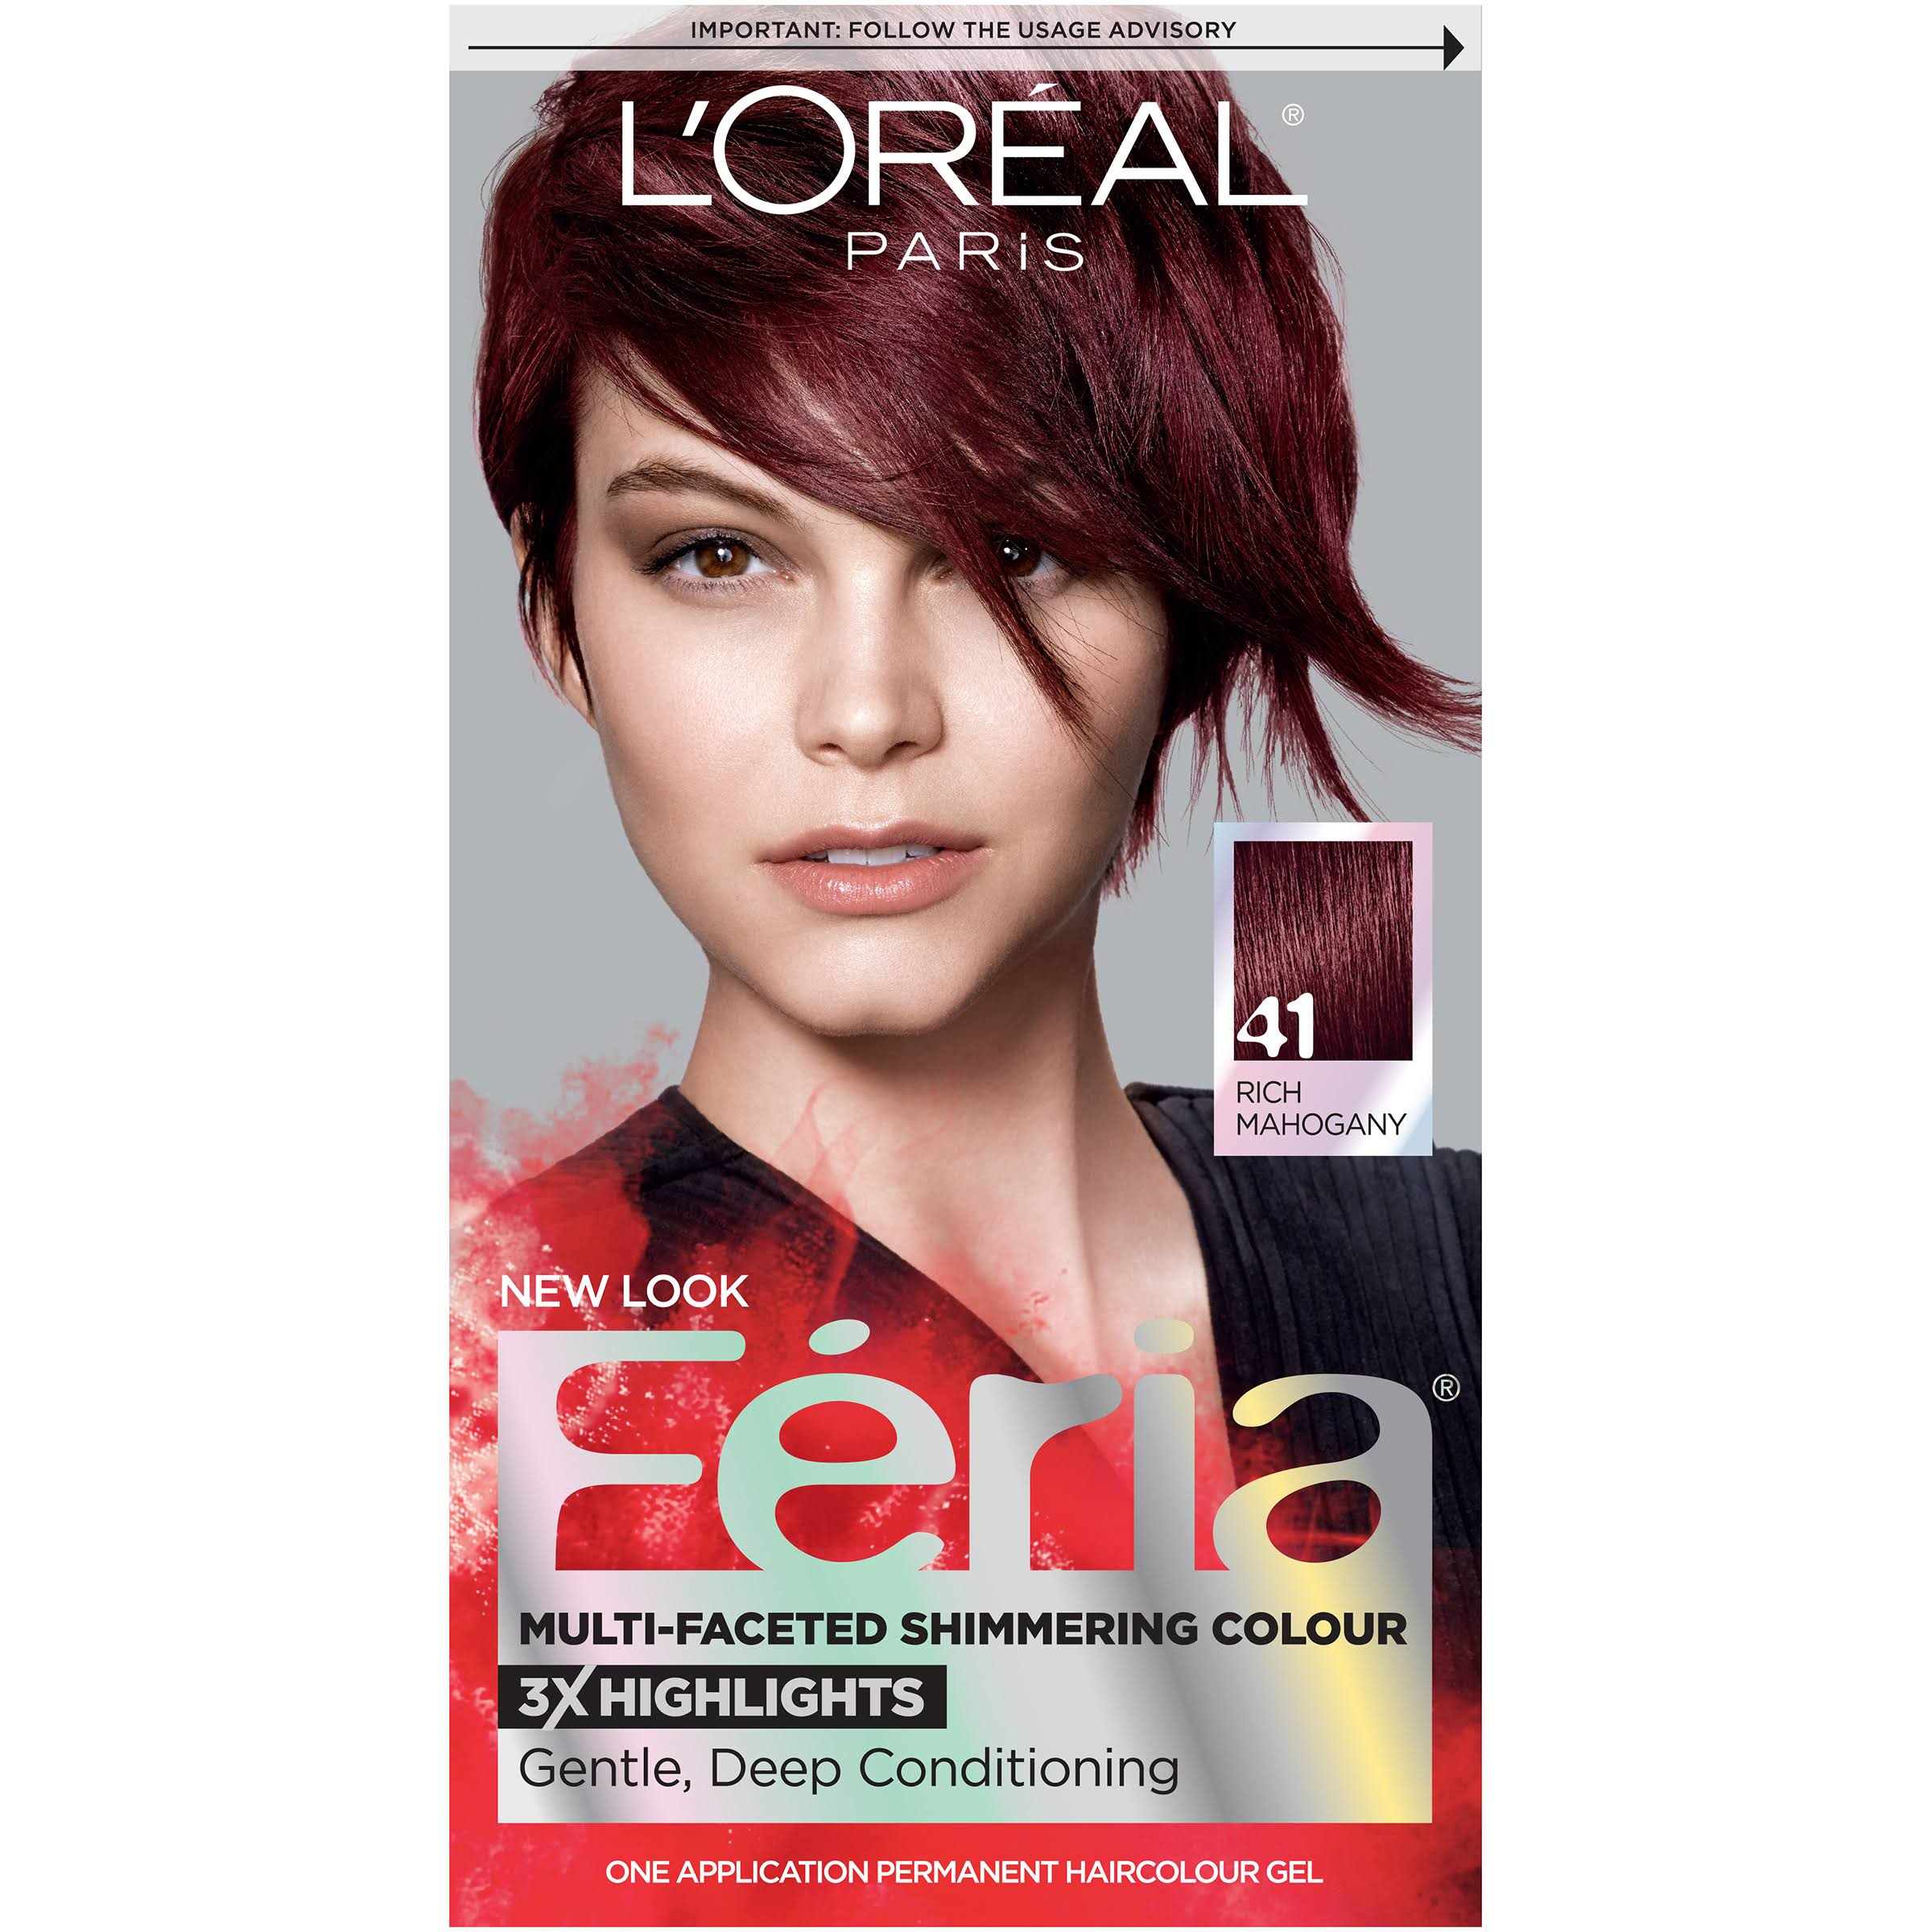 L'Oréal Paris Feria Permanent Hair Color - 41 Rich Mahogany